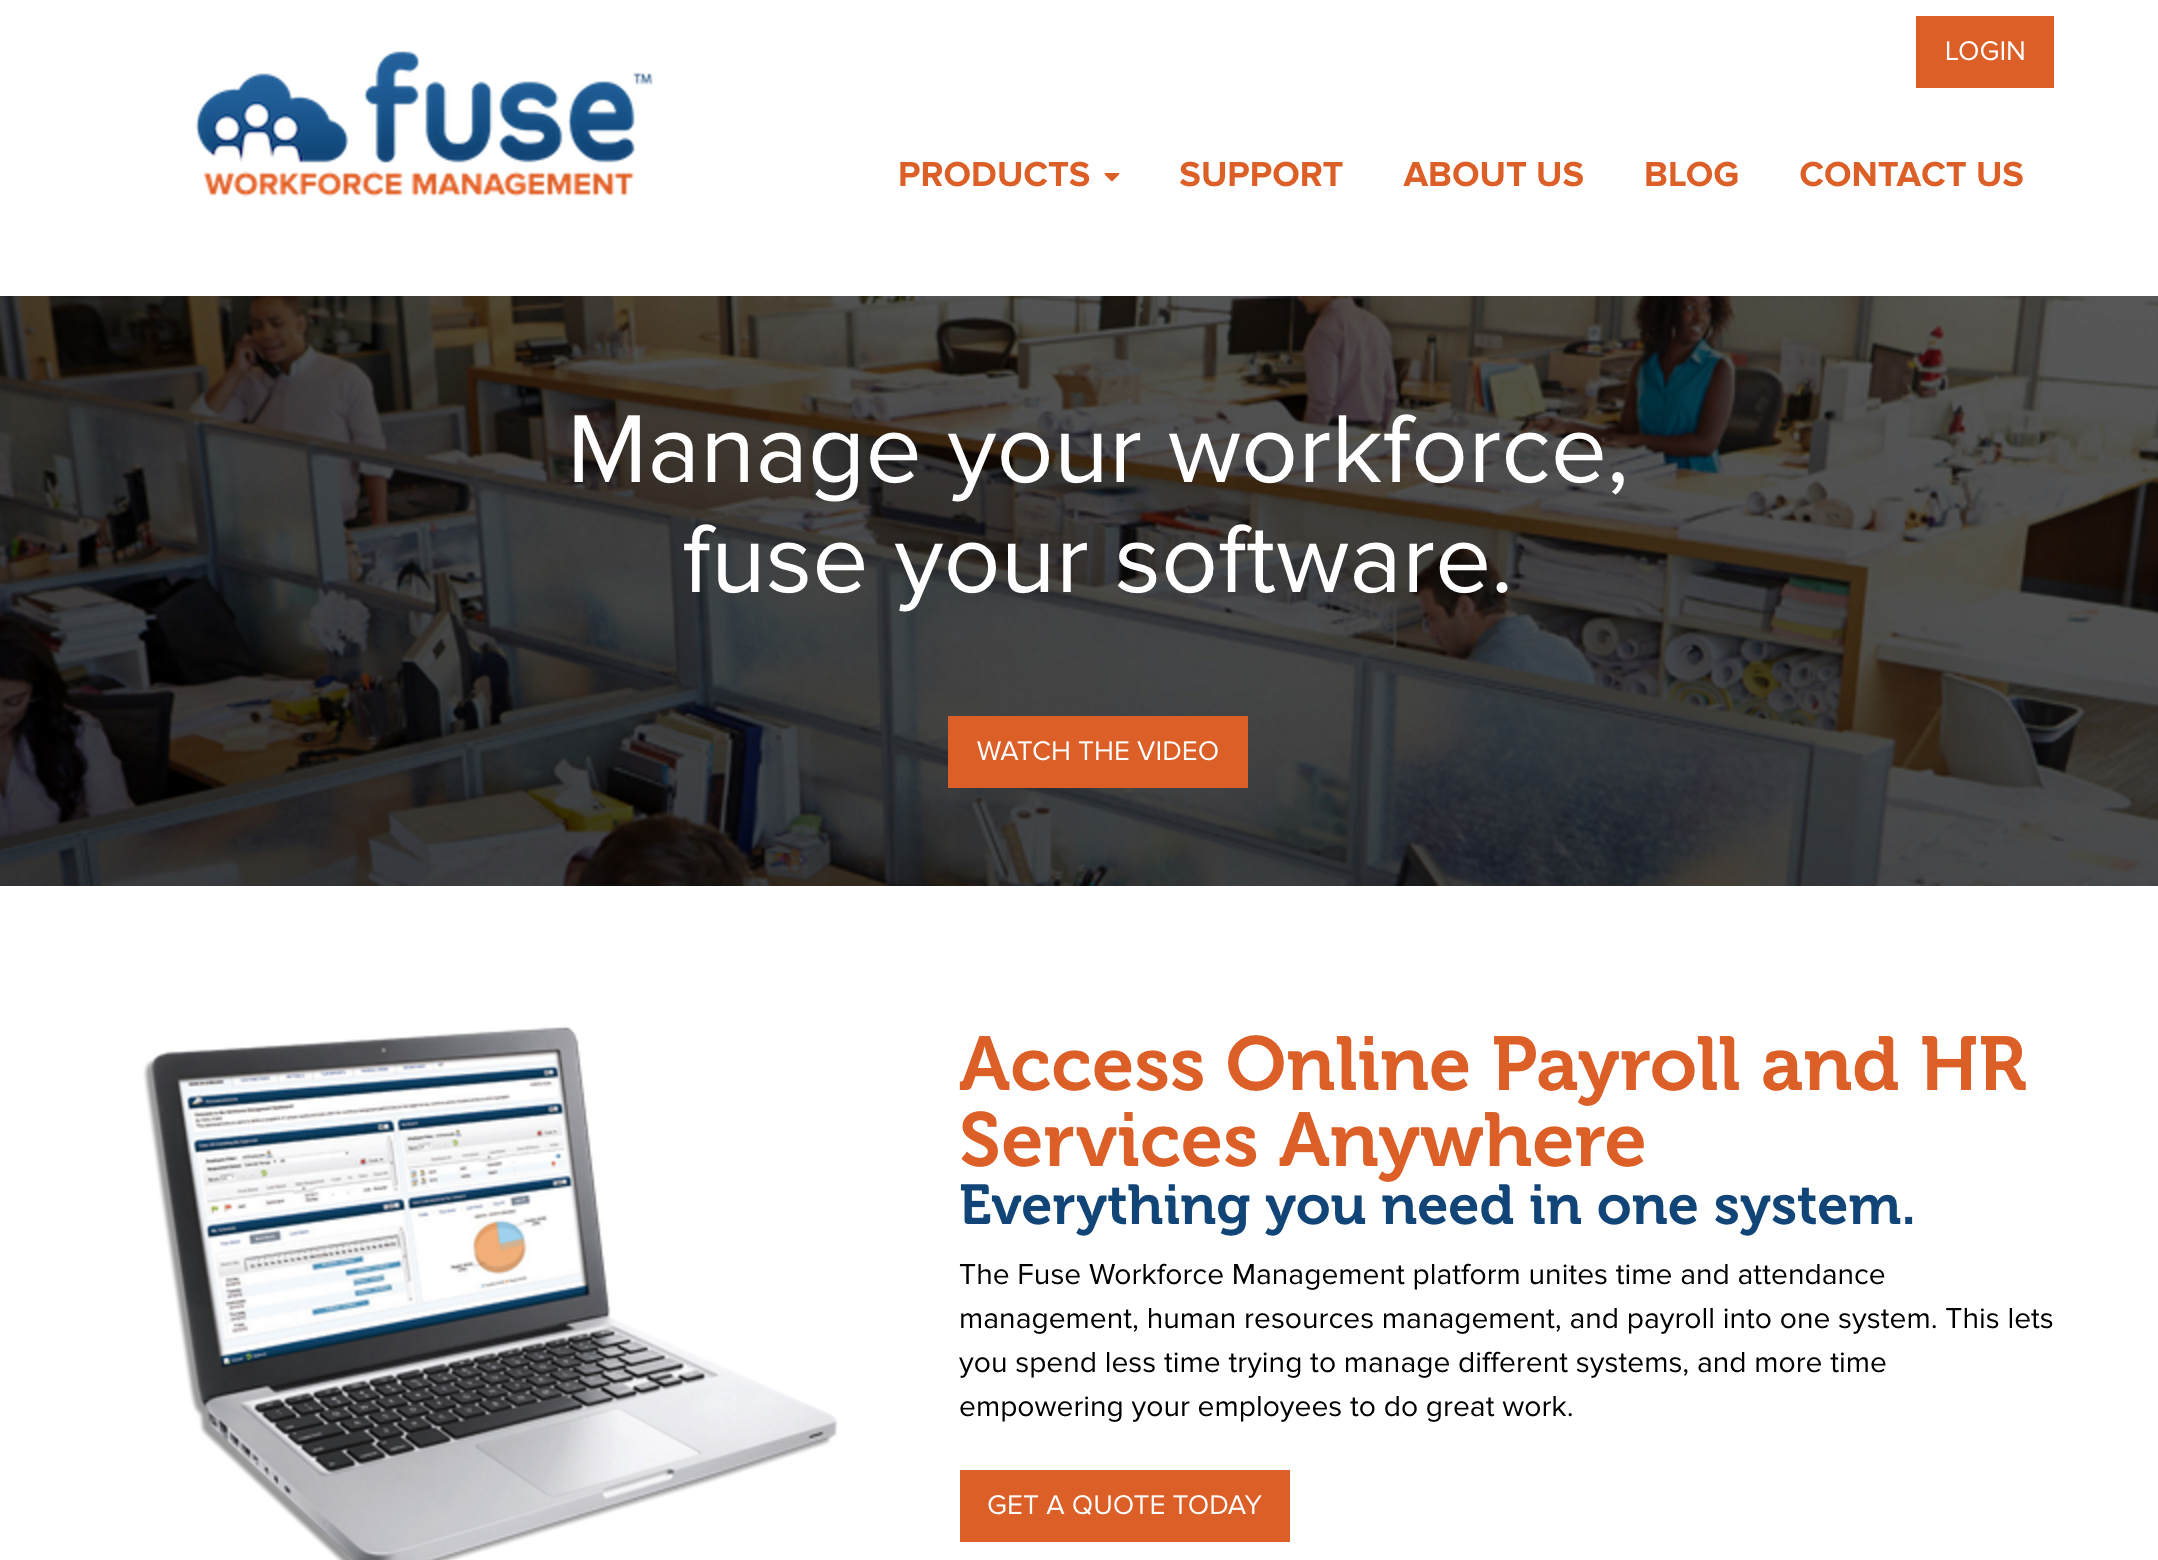 Fuse-Workforce-Management-homepage.png